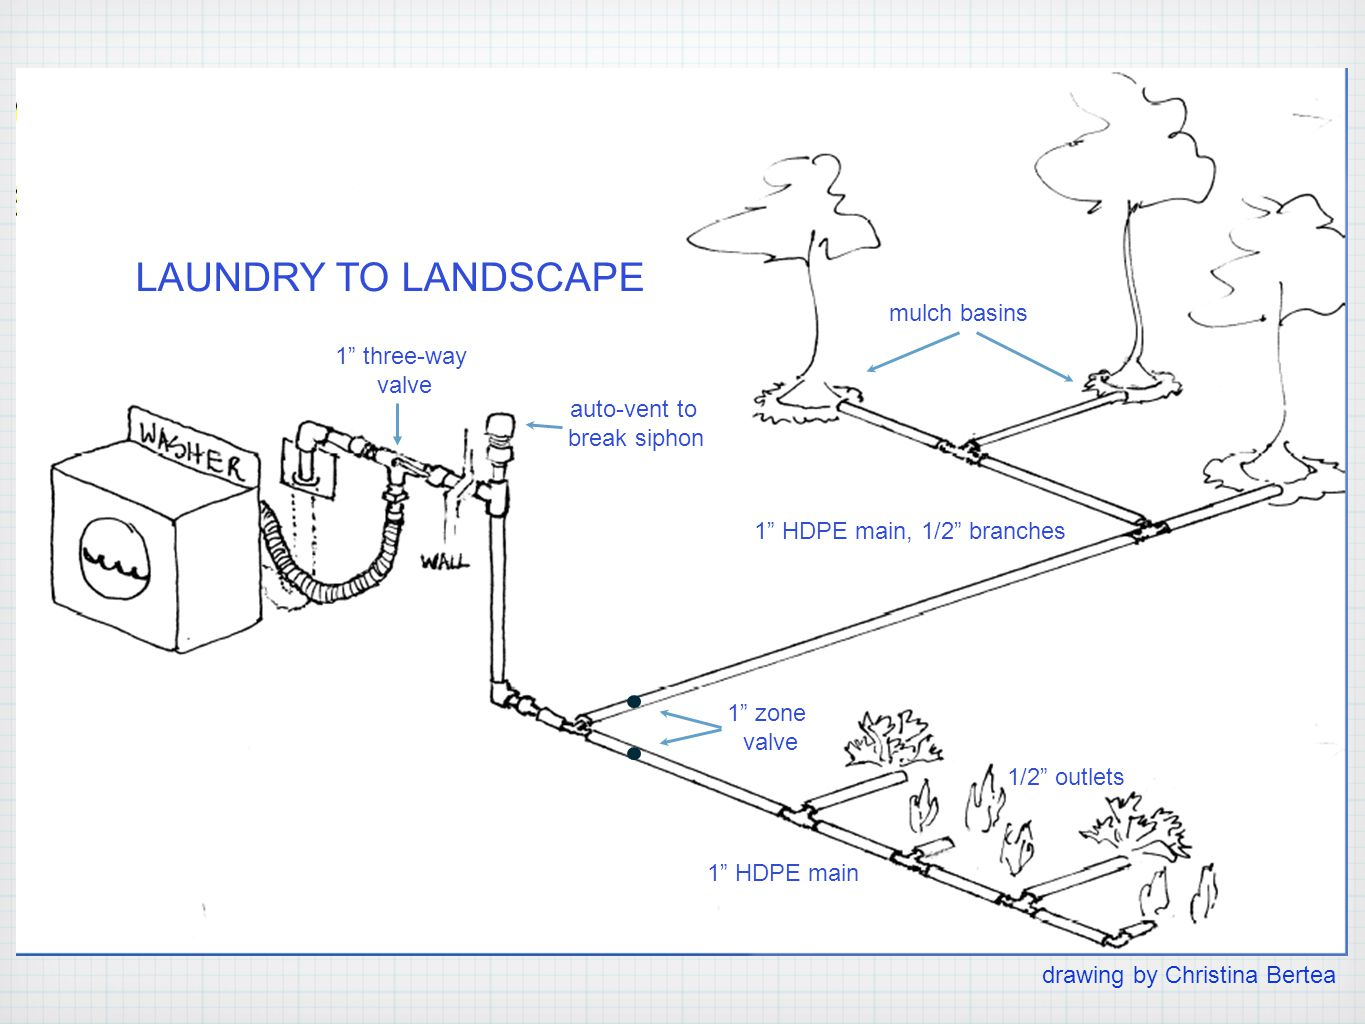 1 zone valve 1/2 outlets 1 HDPE main 1 HDPE main, 1/2 branches auto-vent to break siphon 1 three-way valve LAUNDRY TO LANDSCAPE mulch basins drawing by Christina Bertea